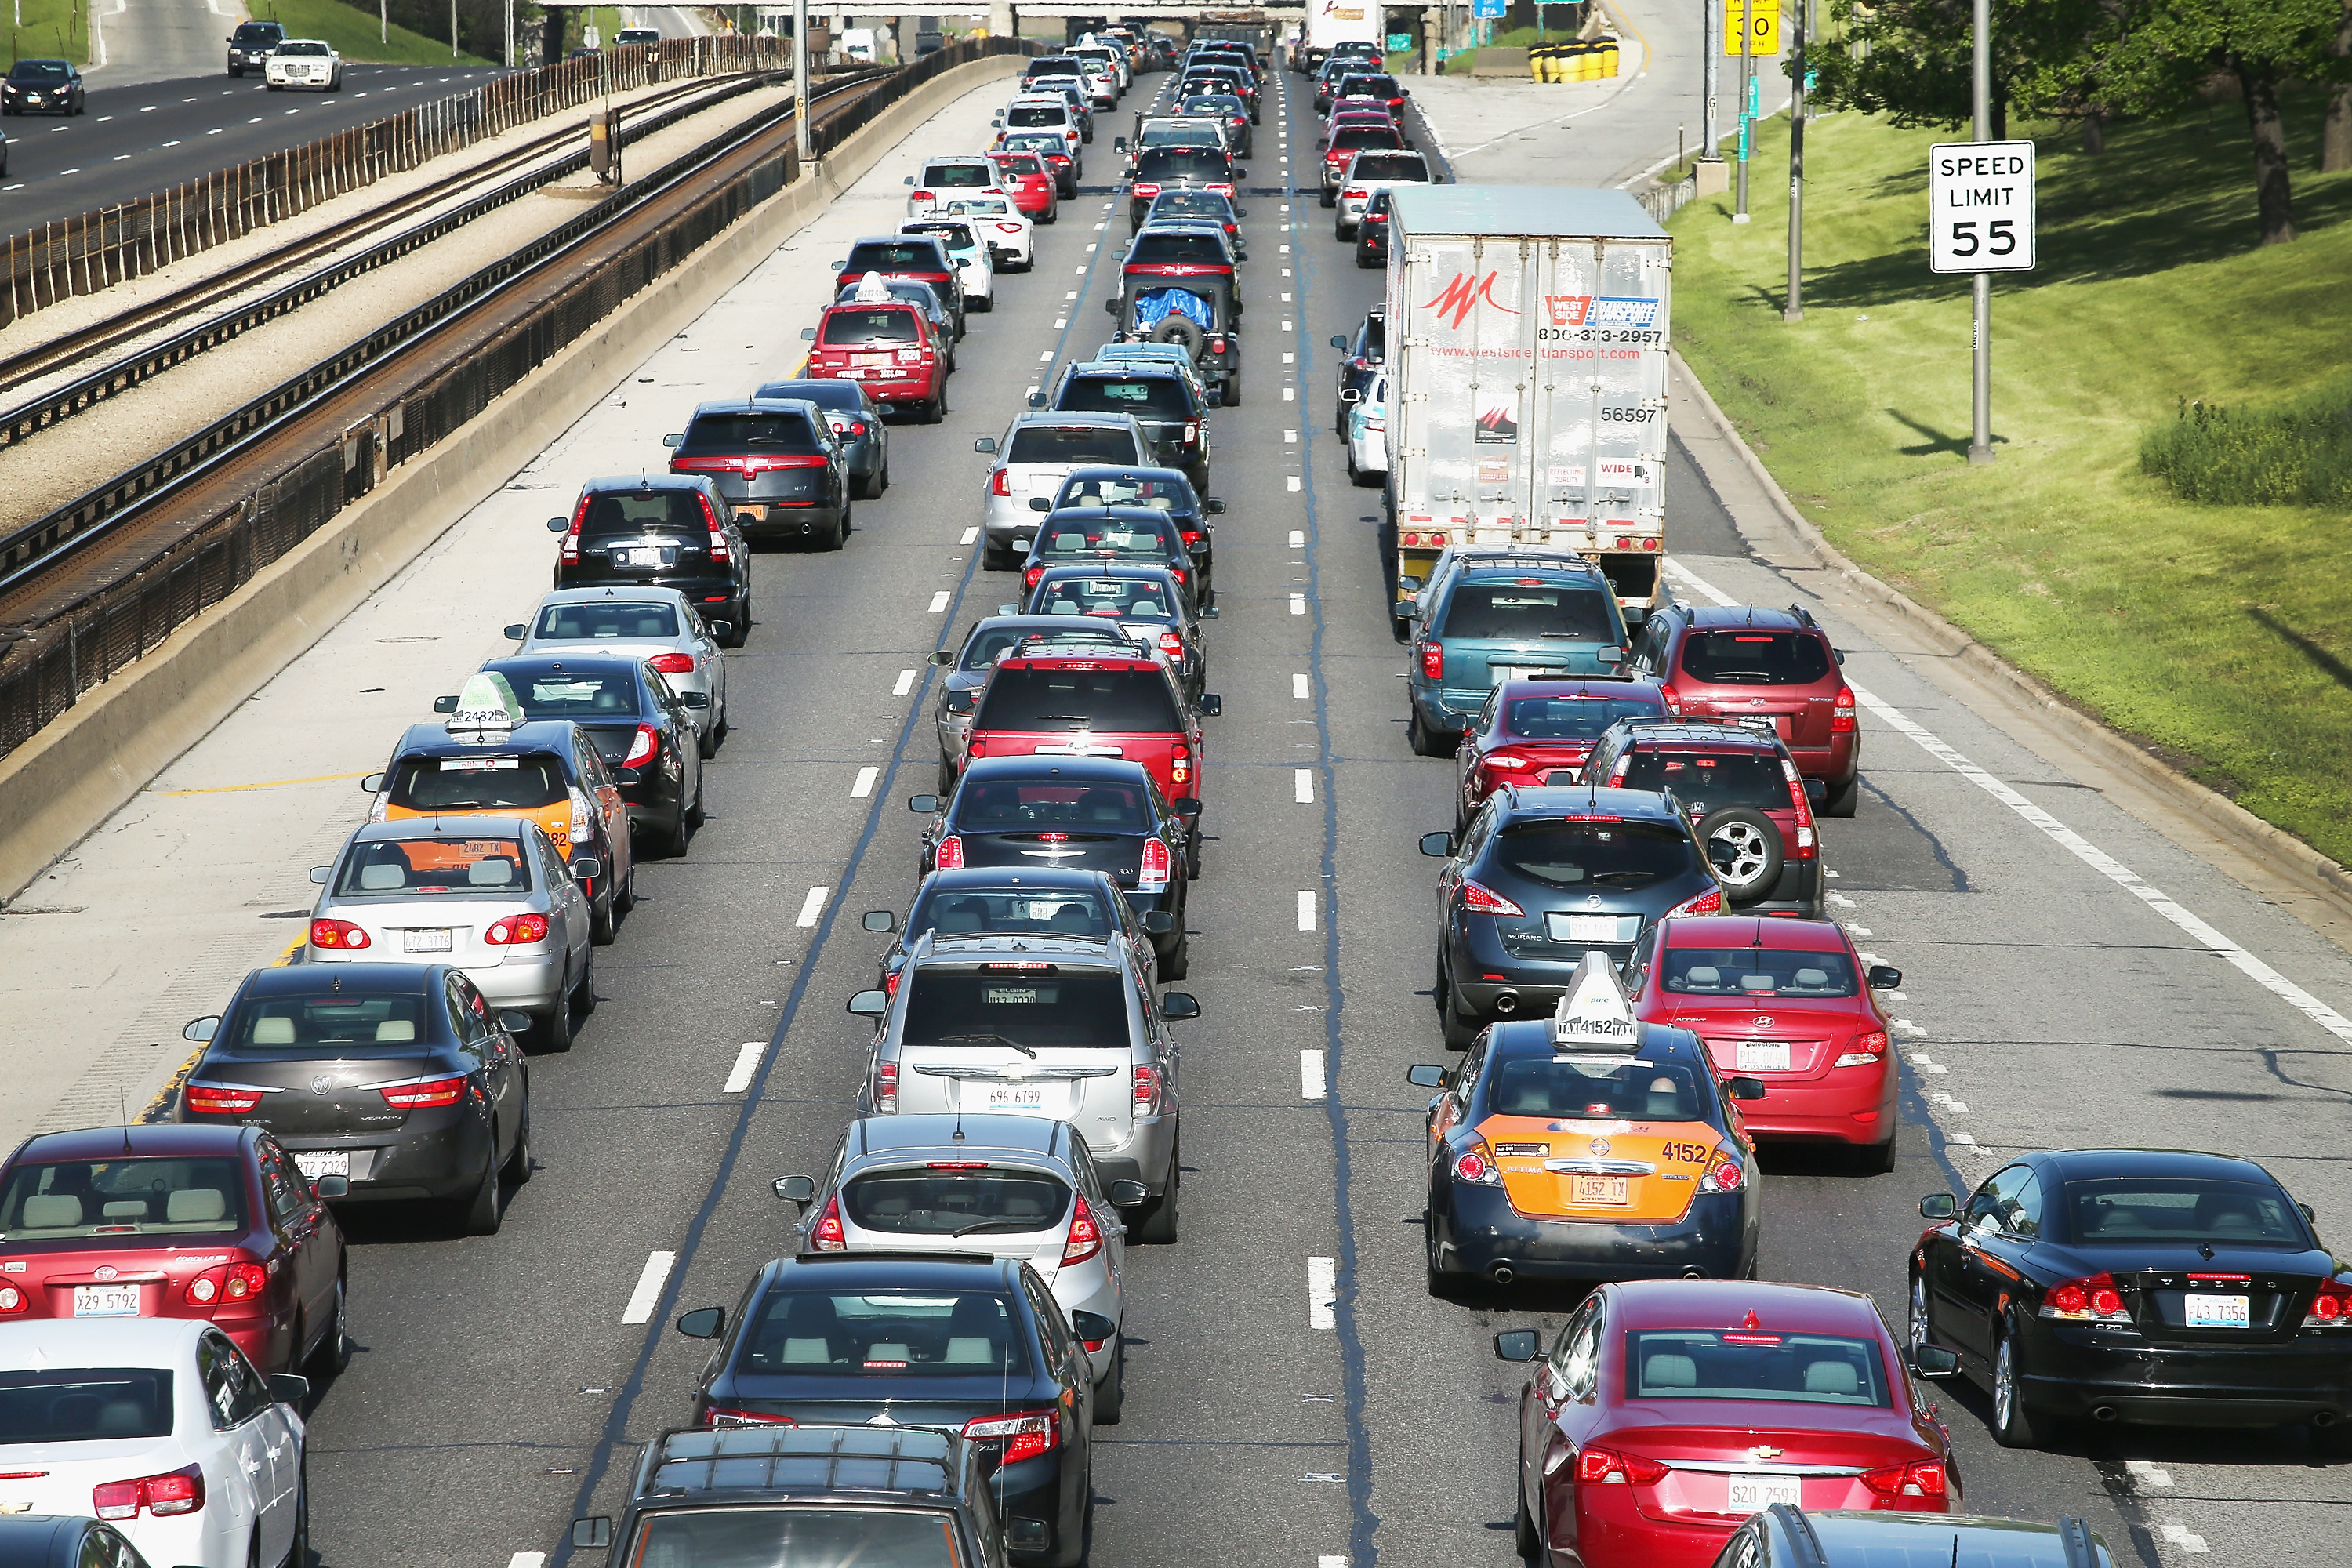 Traffic jams up on the Kennedy Expressway leaving the city for the Memorial Day weekend on May 23, 2014 in Chicago, Illinois. (Photo by Scott Olson/Getty Images)